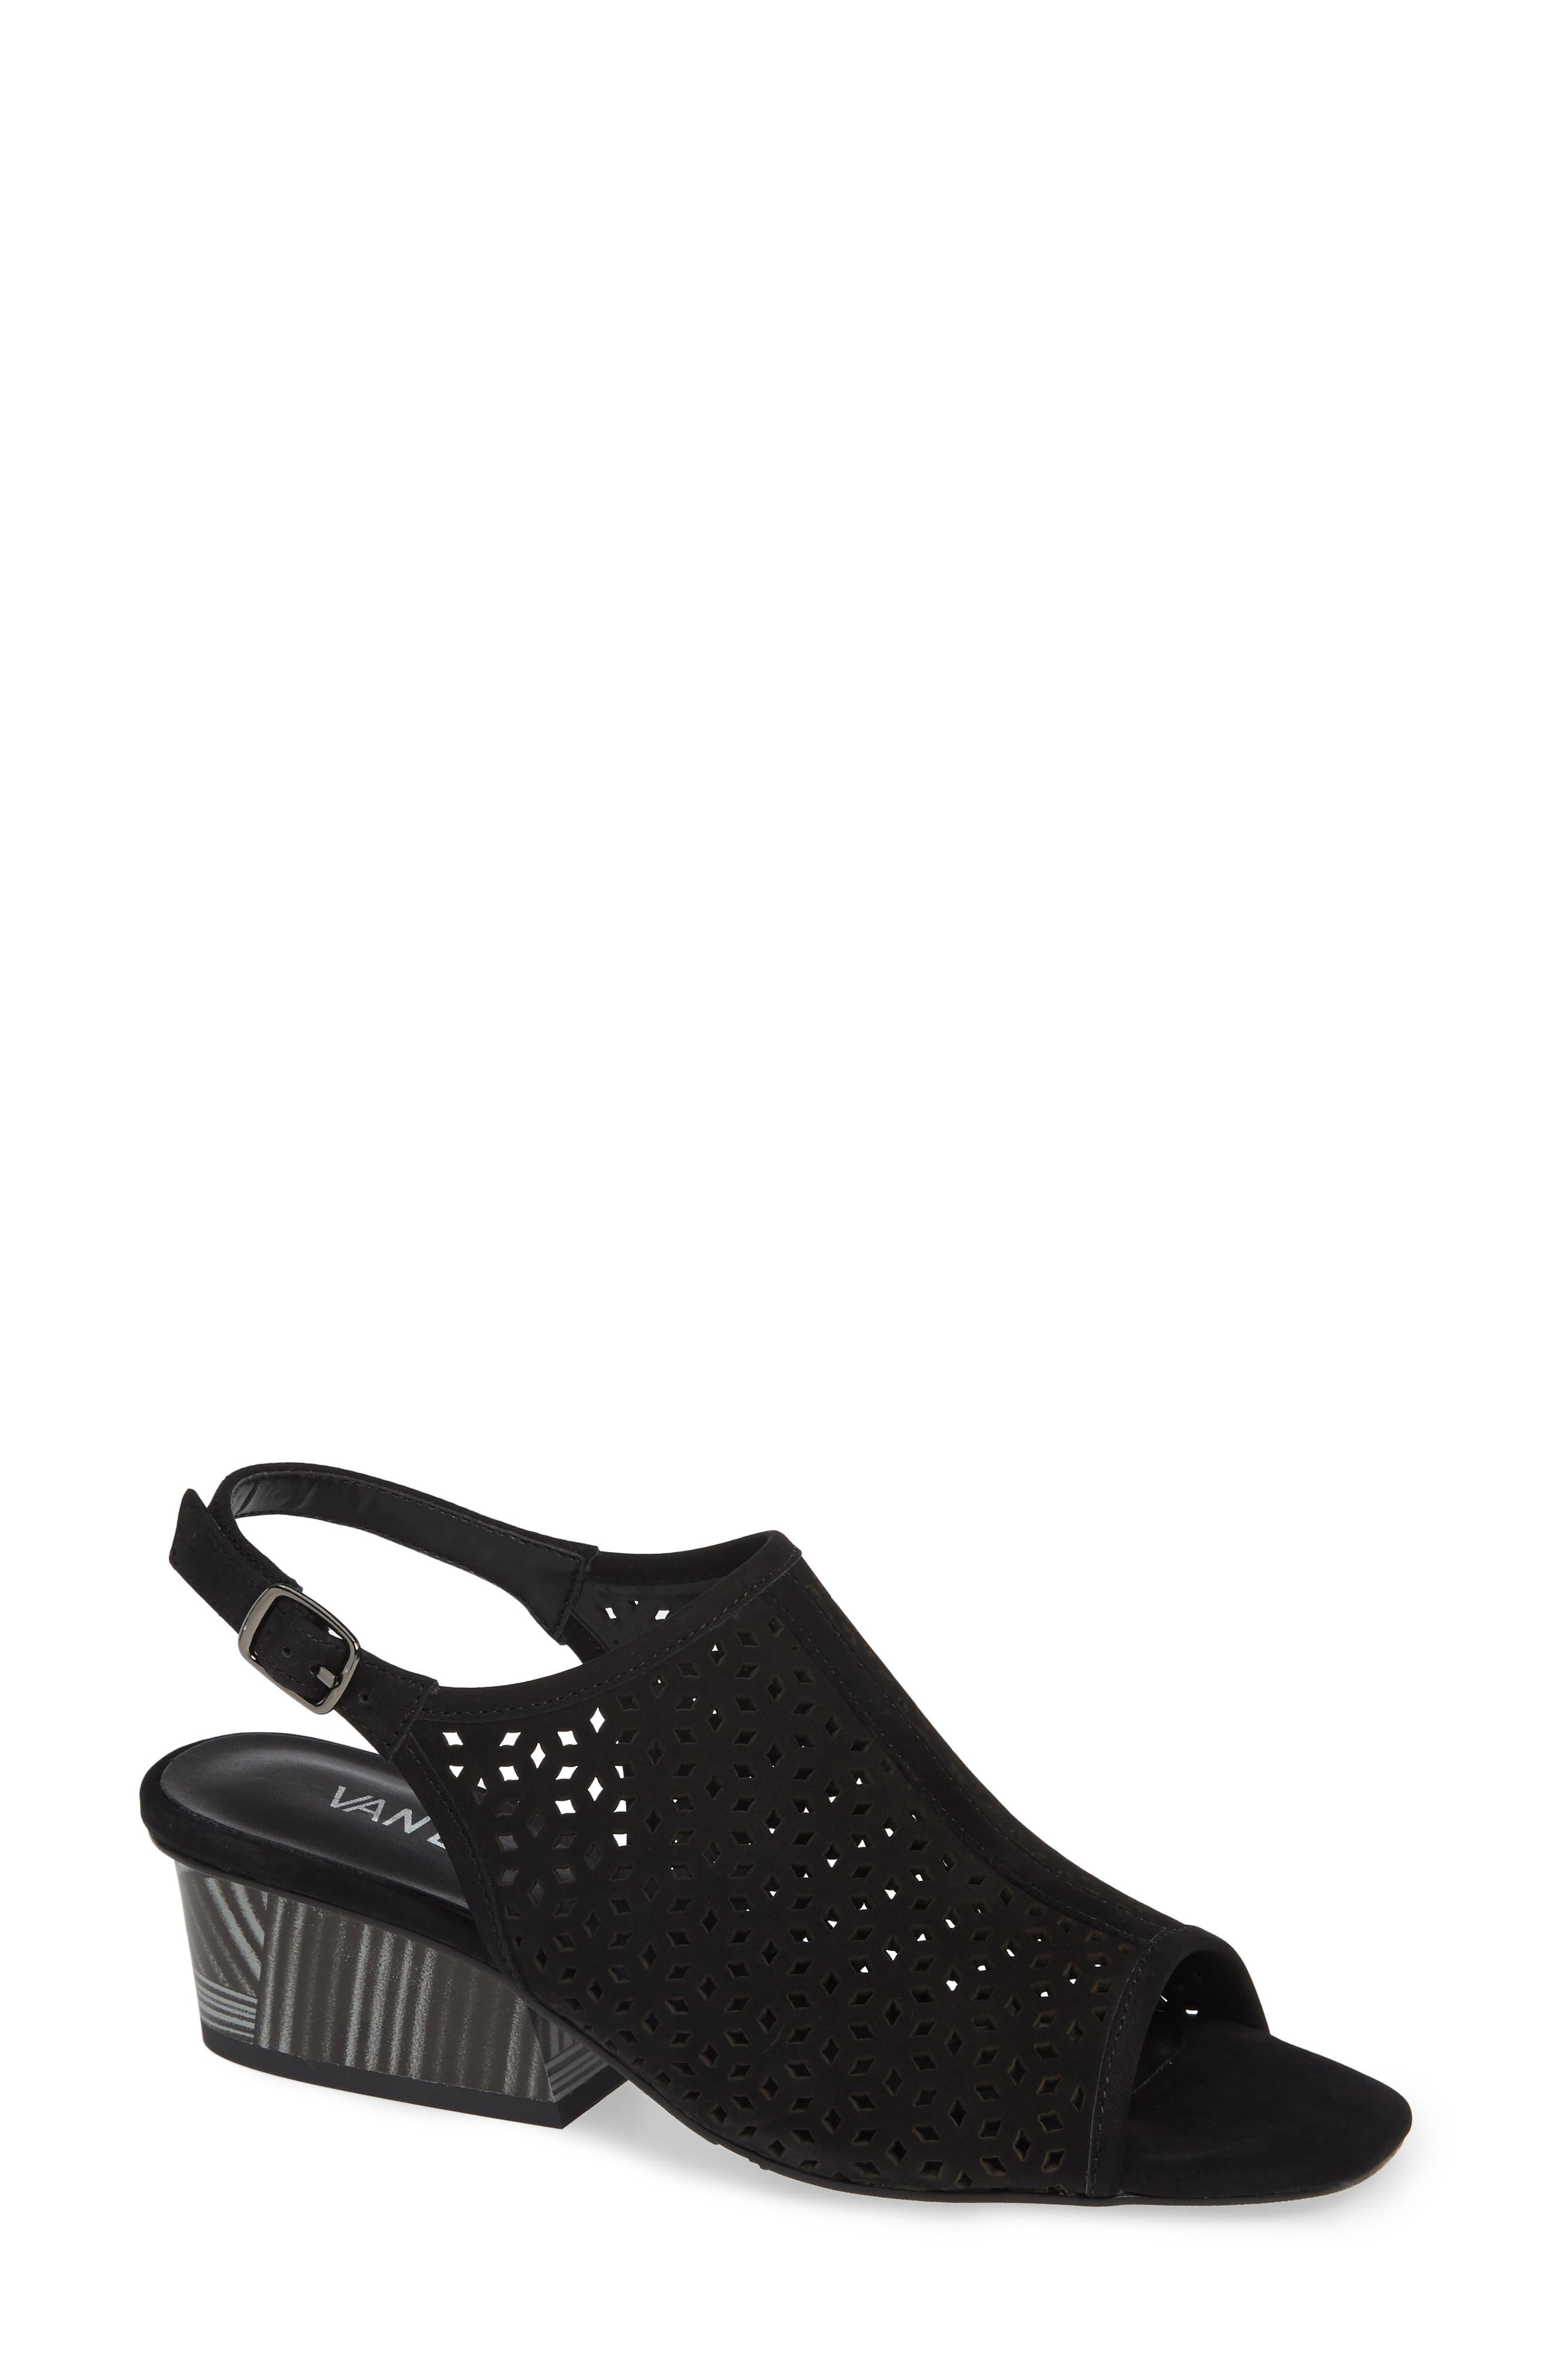 Candra Perforated Sandal, Main, color, BLACK NUBUCK LEATHER